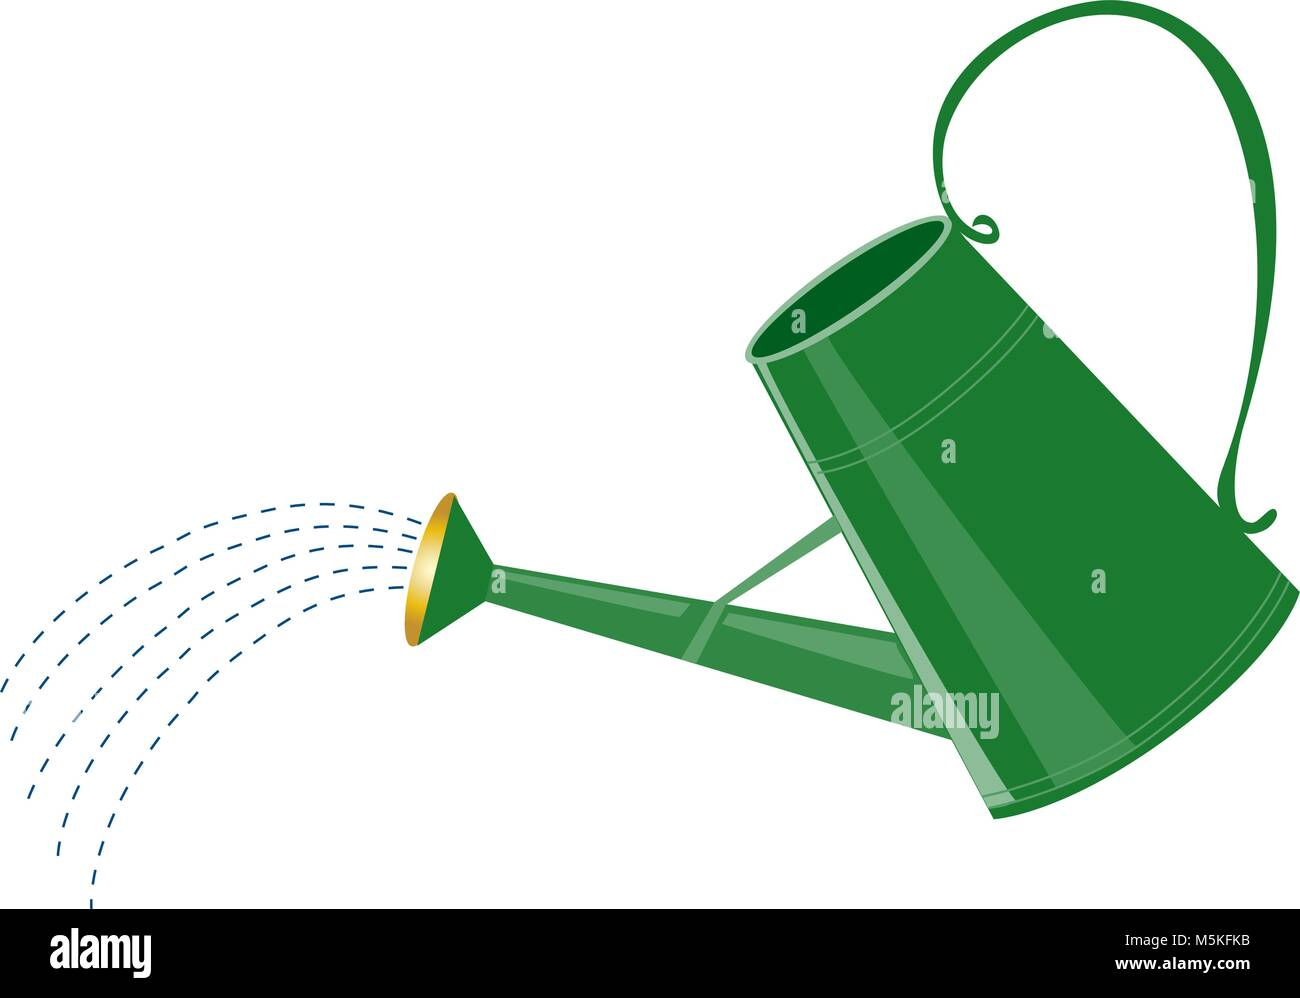 A cartoon green watering can with water sprinkler - Stock Image